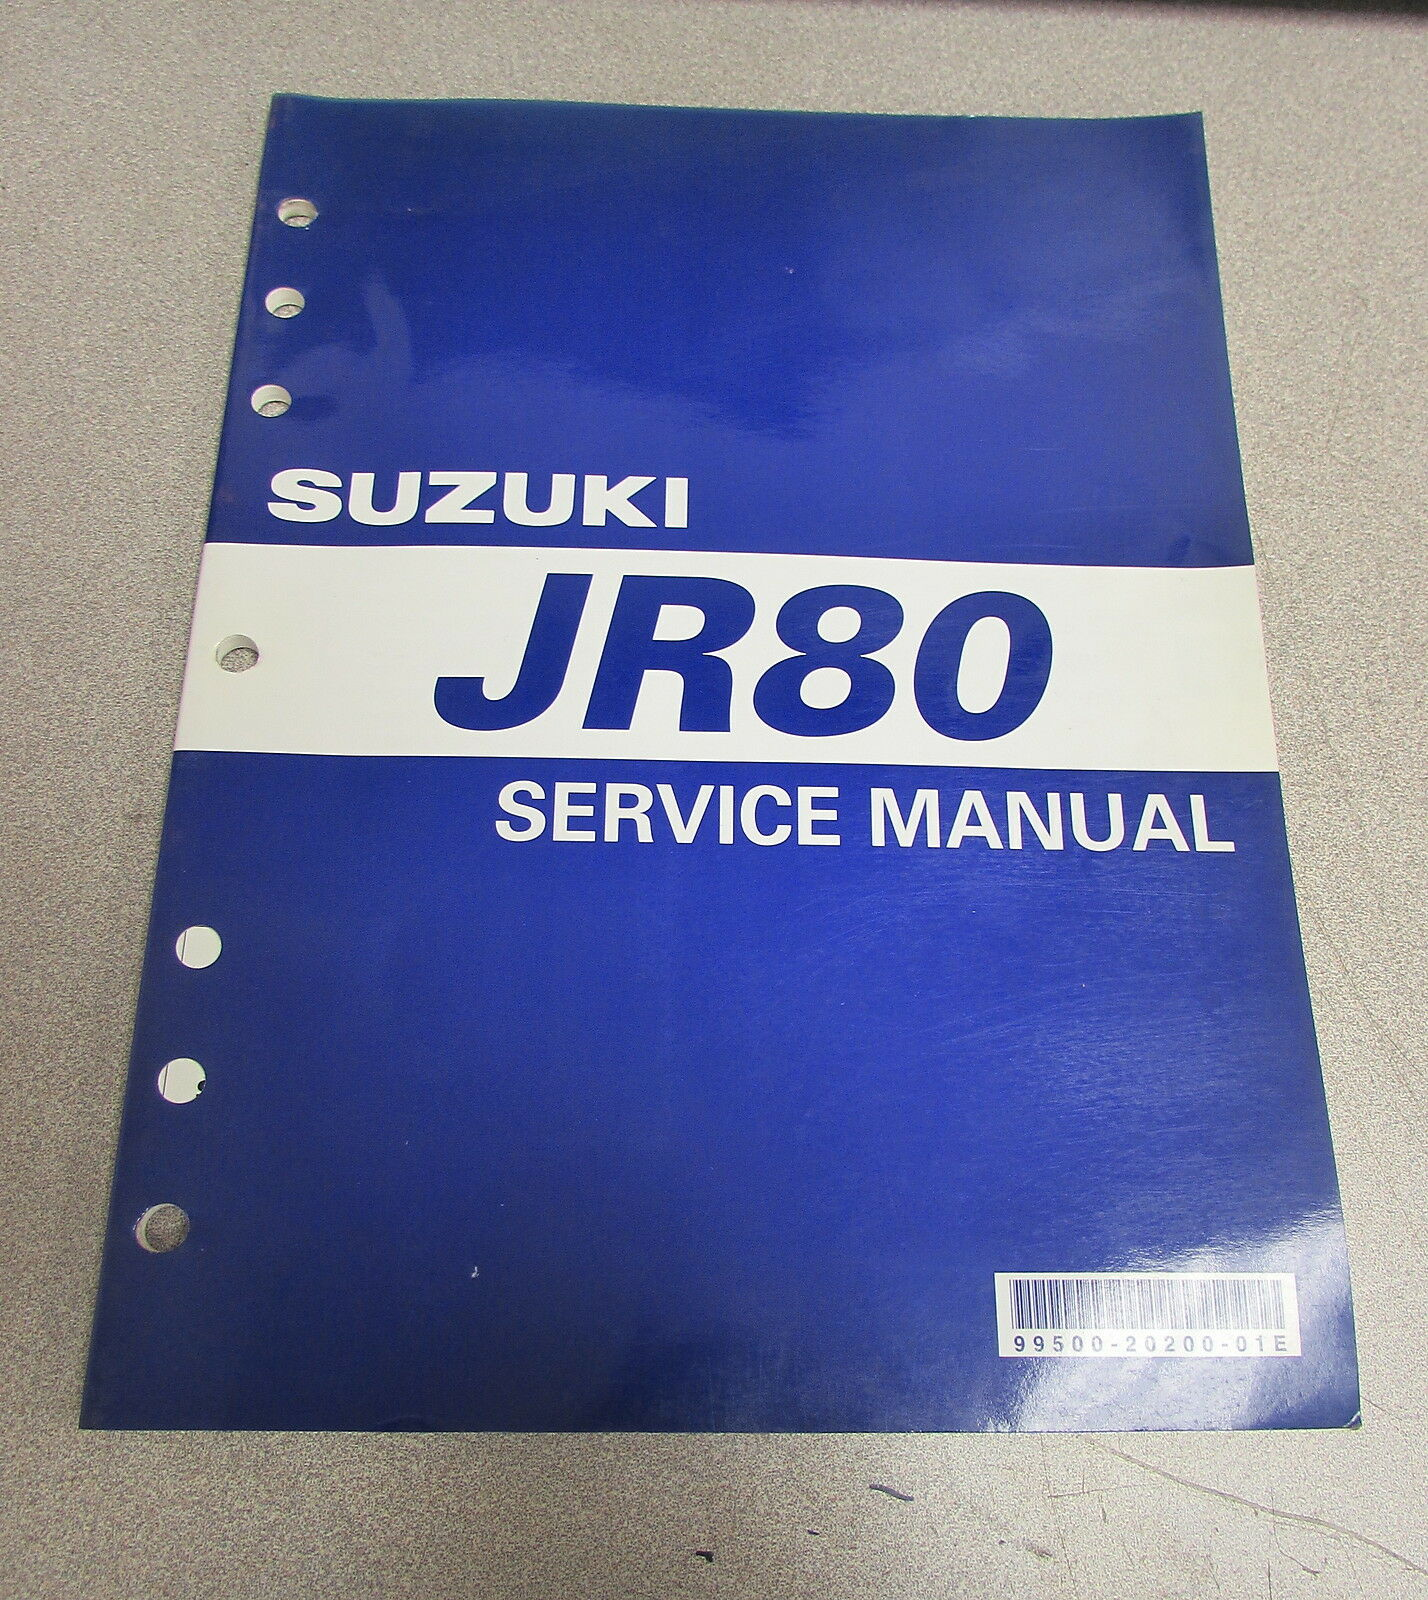 Suzuki eiger manual ebook array suzuki eiger manual ebook rh suzuki eiger manual ebook fullybelly de fandeluxe Gallery